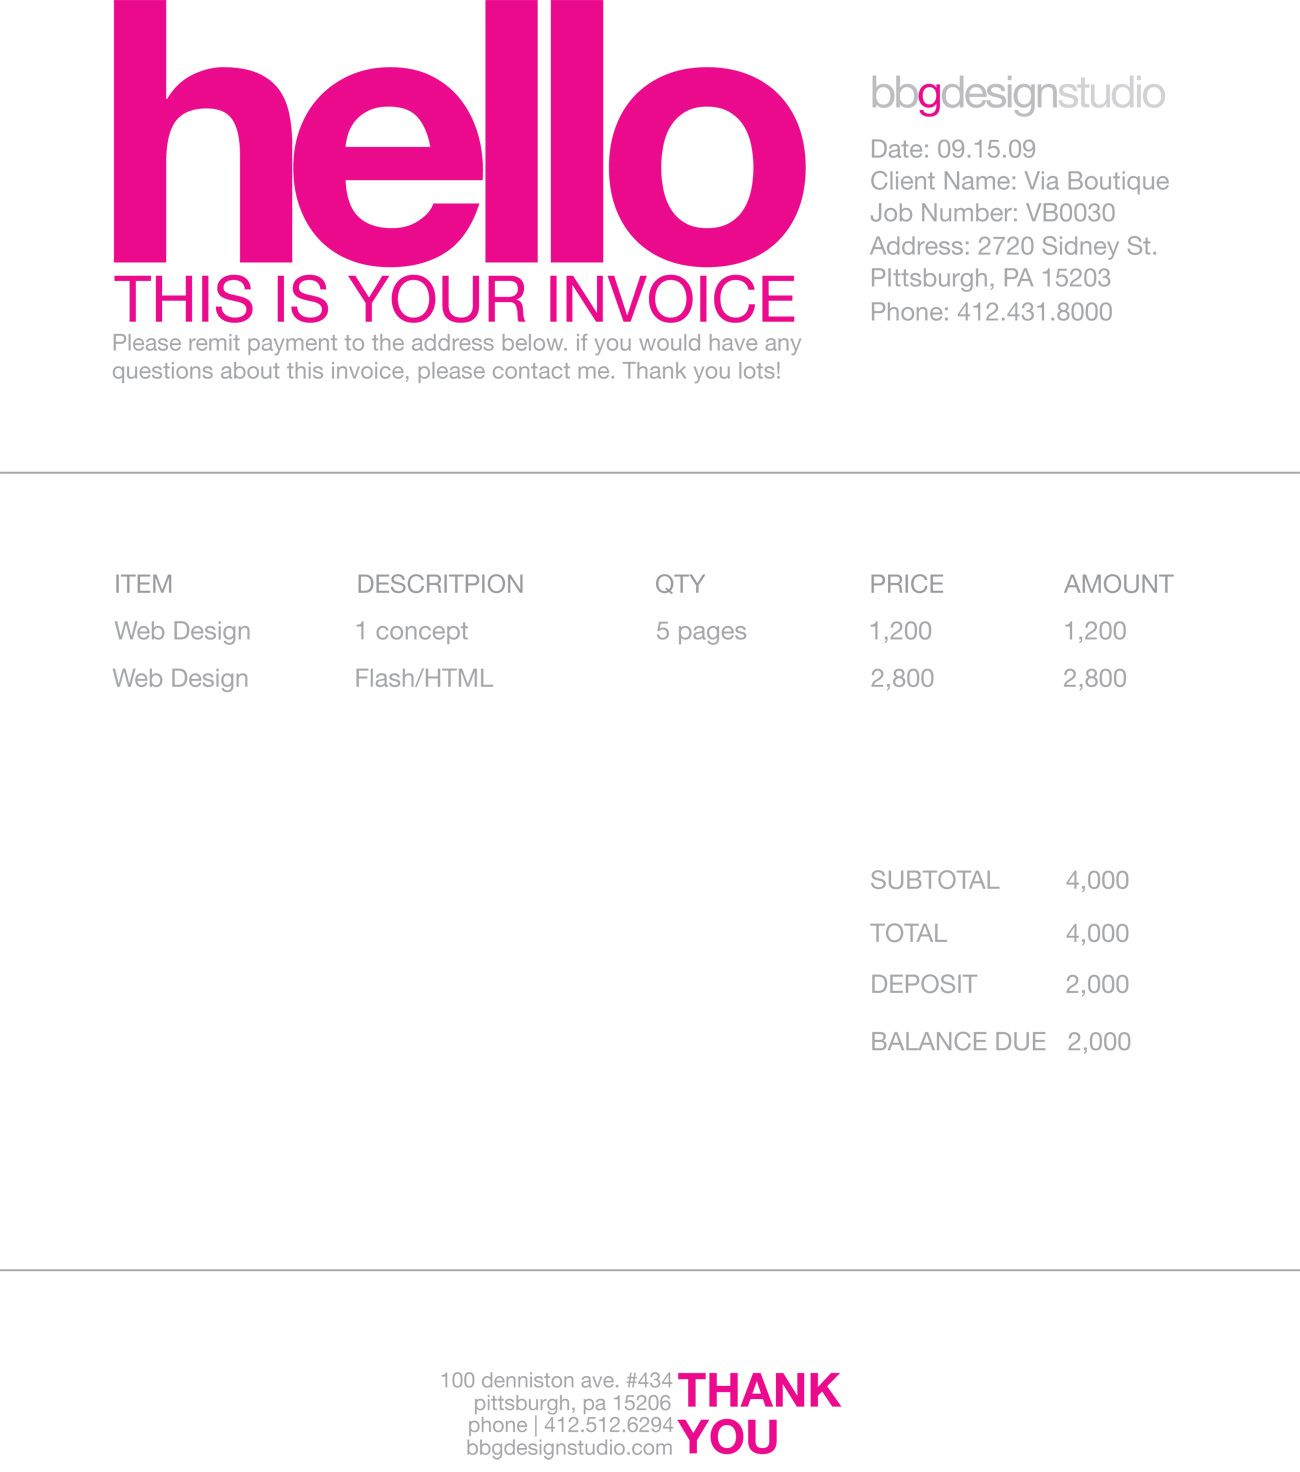 Shopdesignsus  Scenic  Images About Invoice Design On Pinterest With Remarkable Invoice For Payment Besides Free Business Invoice Template Furthermore Free Billing Invoice Template With Attractive Blank Invoice Template Excel Also Invoice Pads In Addition Mobile Invoicing App And Small Business Invoice As Well As Pay Ebay Invoice Additionally Itemized Invoice Template From Pinterestcom With Shopdesignsus  Remarkable  Images About Invoice Design On Pinterest With Attractive Invoice For Payment Besides Free Business Invoice Template Furthermore Free Billing Invoice Template And Scenic Blank Invoice Template Excel Also Invoice Pads In Addition Mobile Invoicing App From Pinterestcom